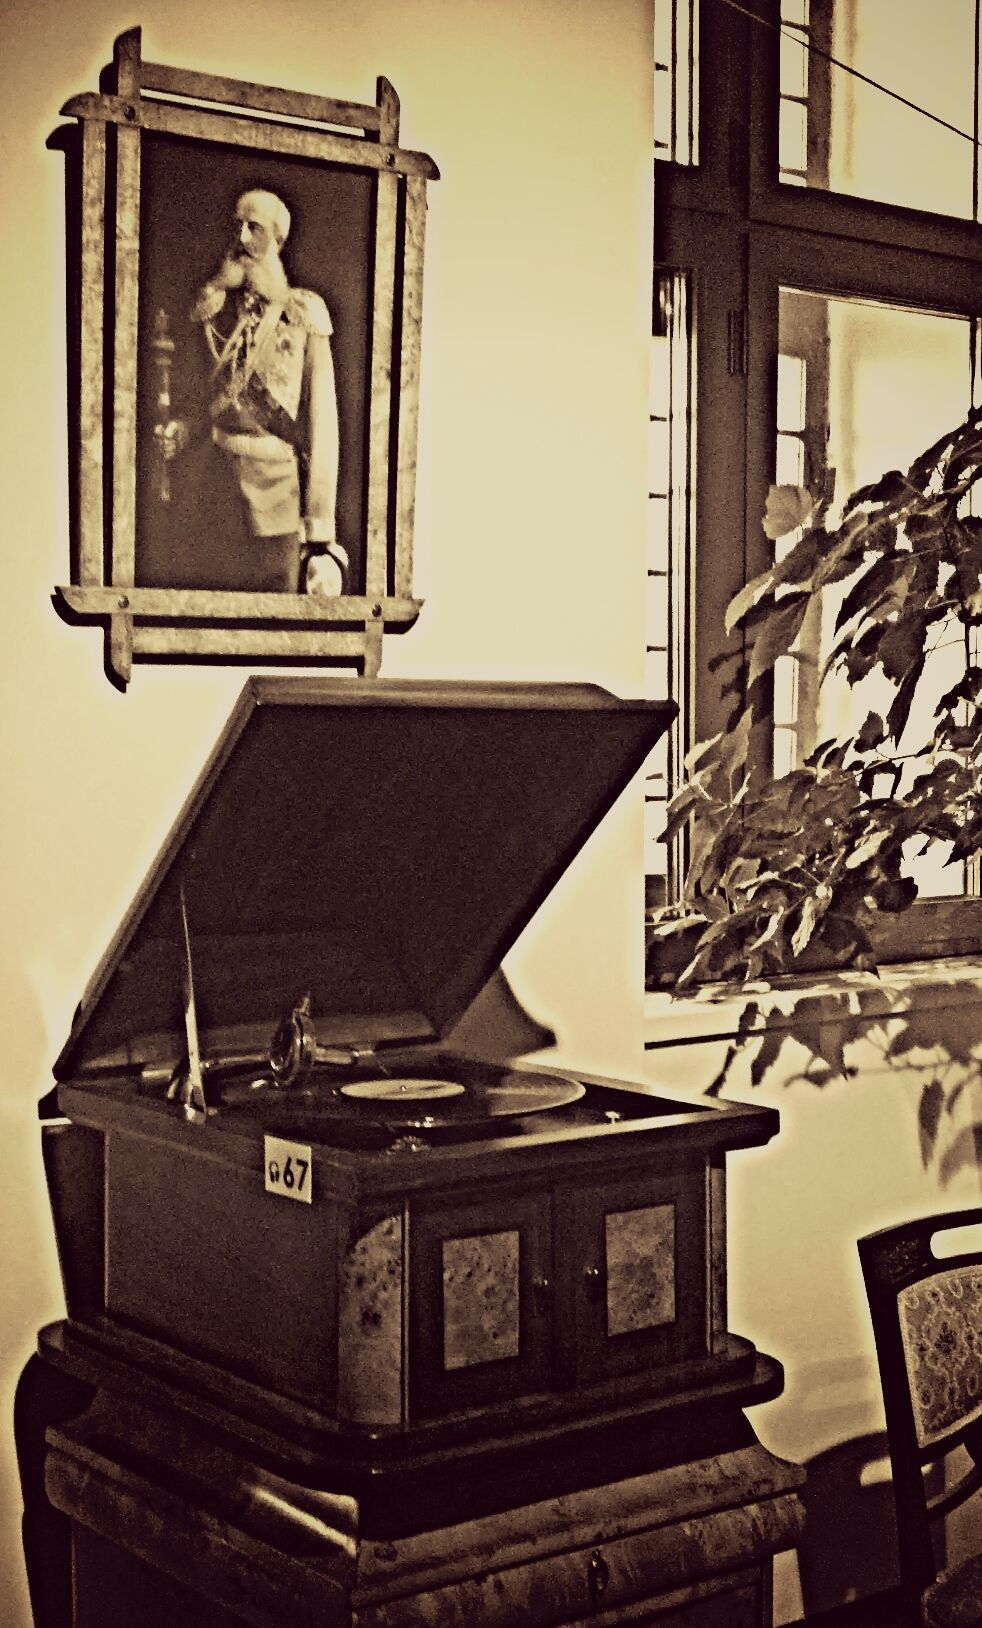 My second photo for #WAPsepia. Please vote, if you like it!